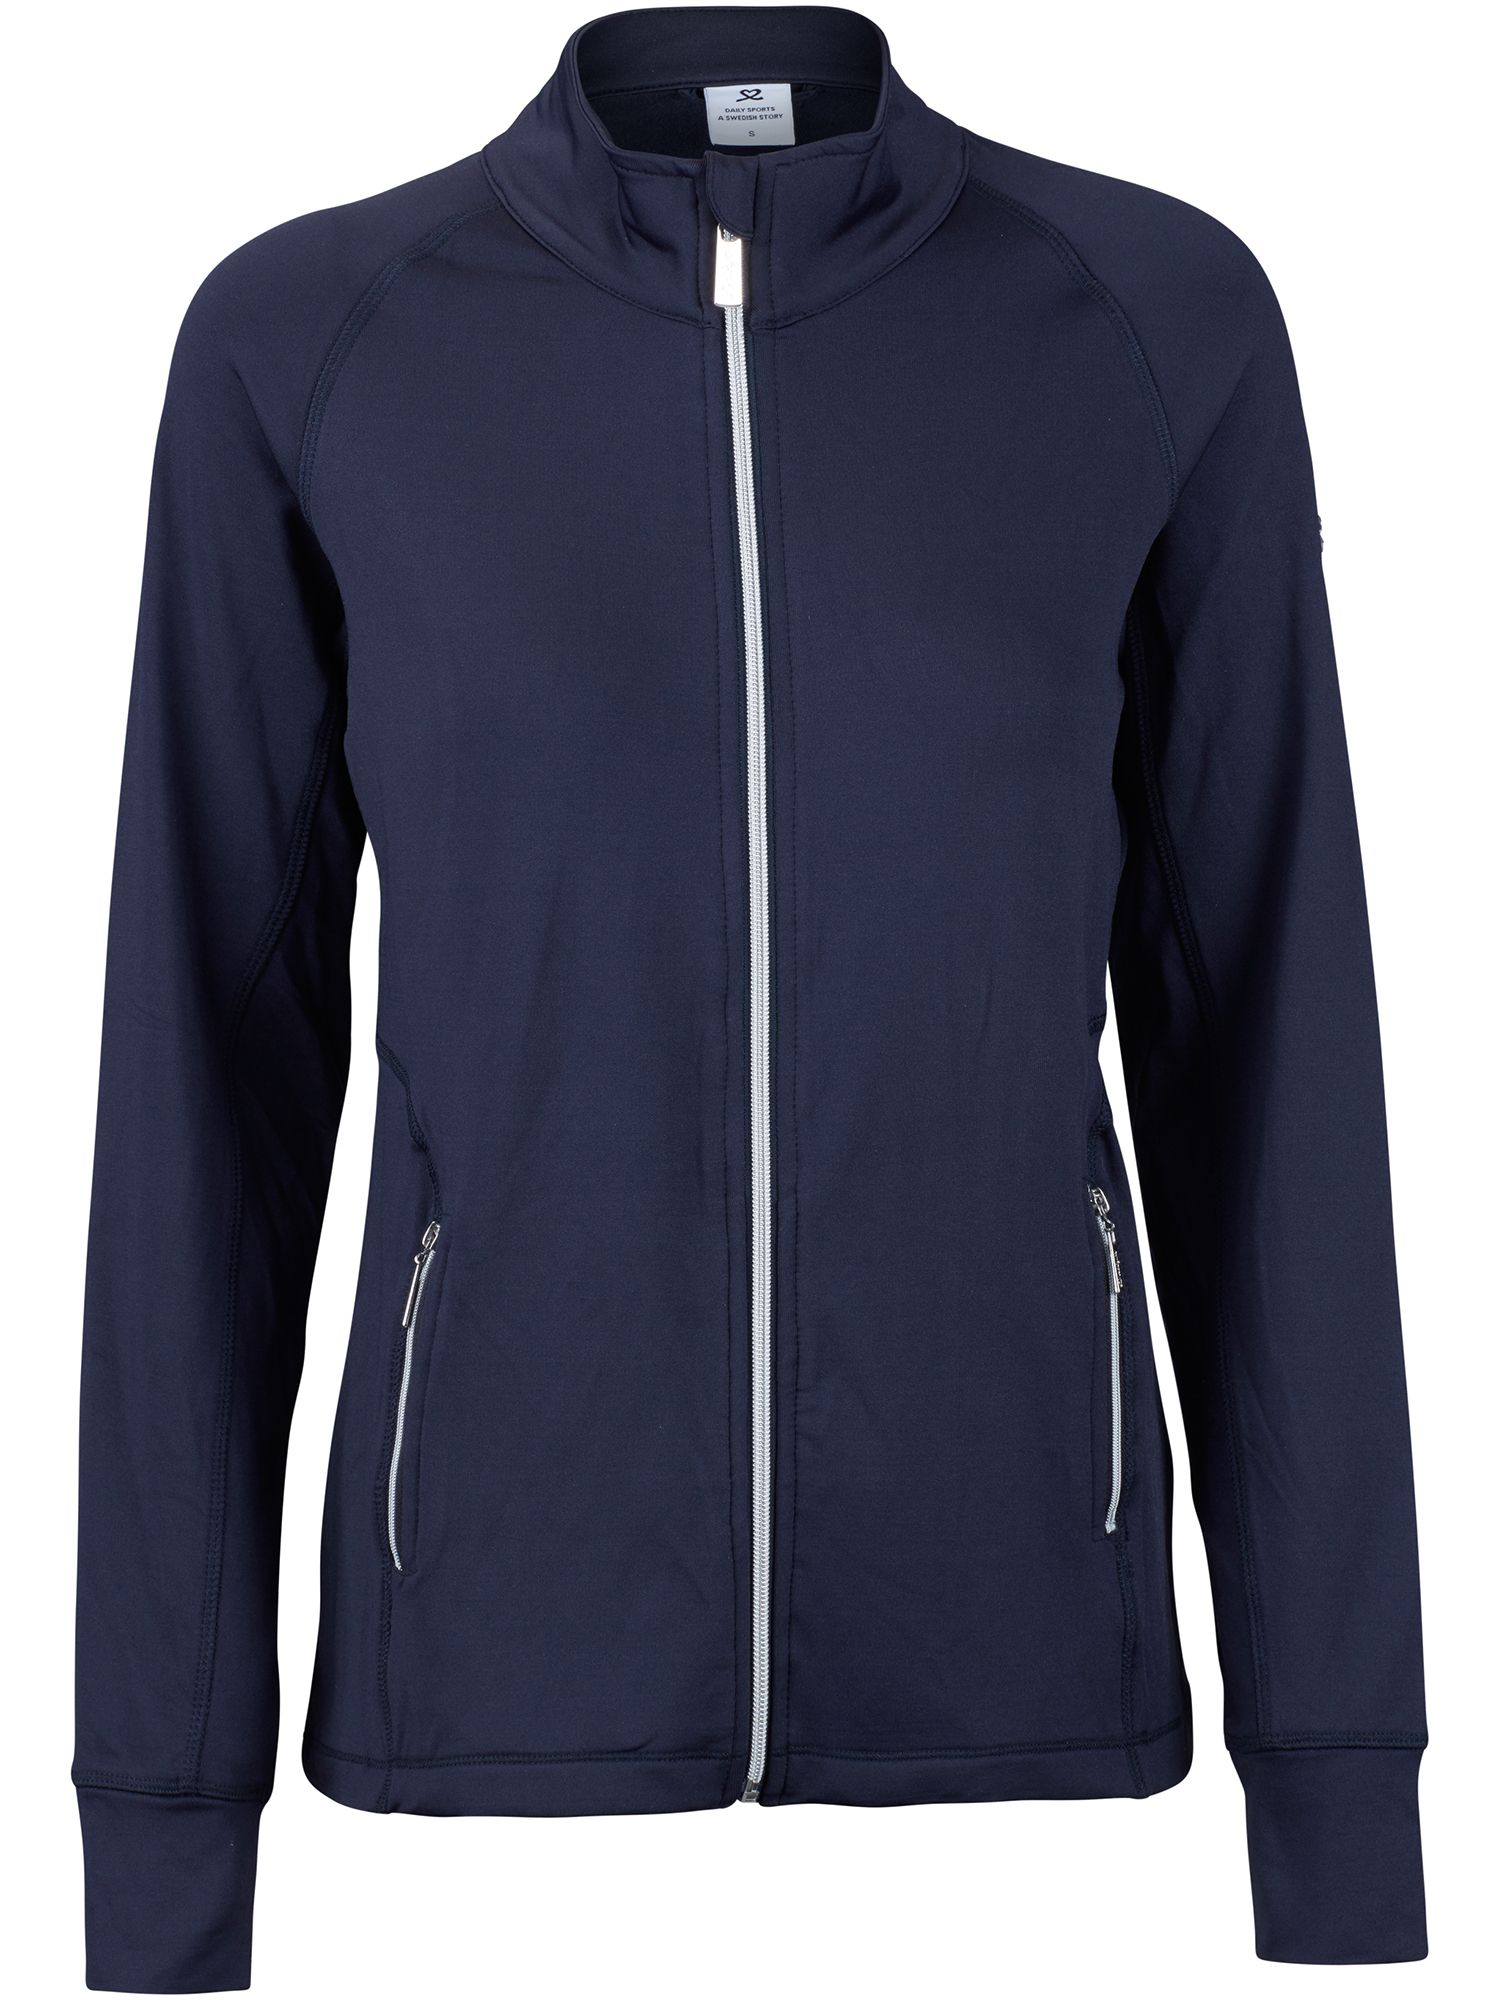 Daily Sports Bounce Jacket, Blue